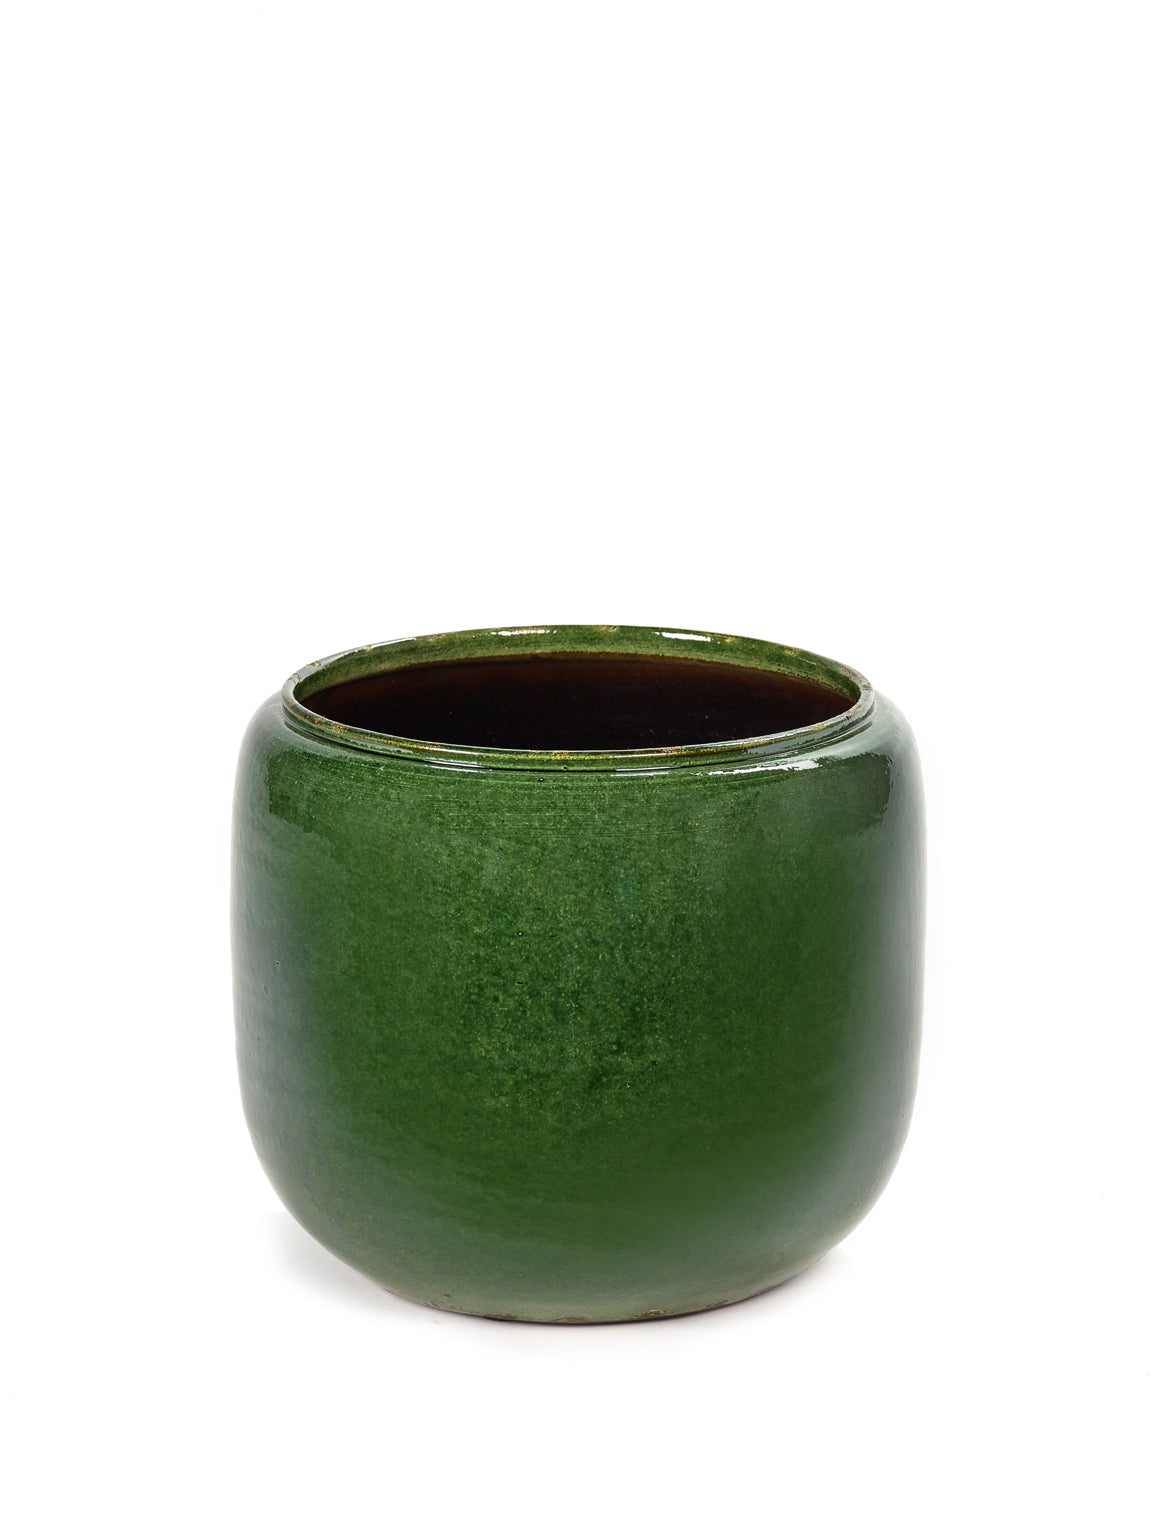 Costa Pot - Green Glazed